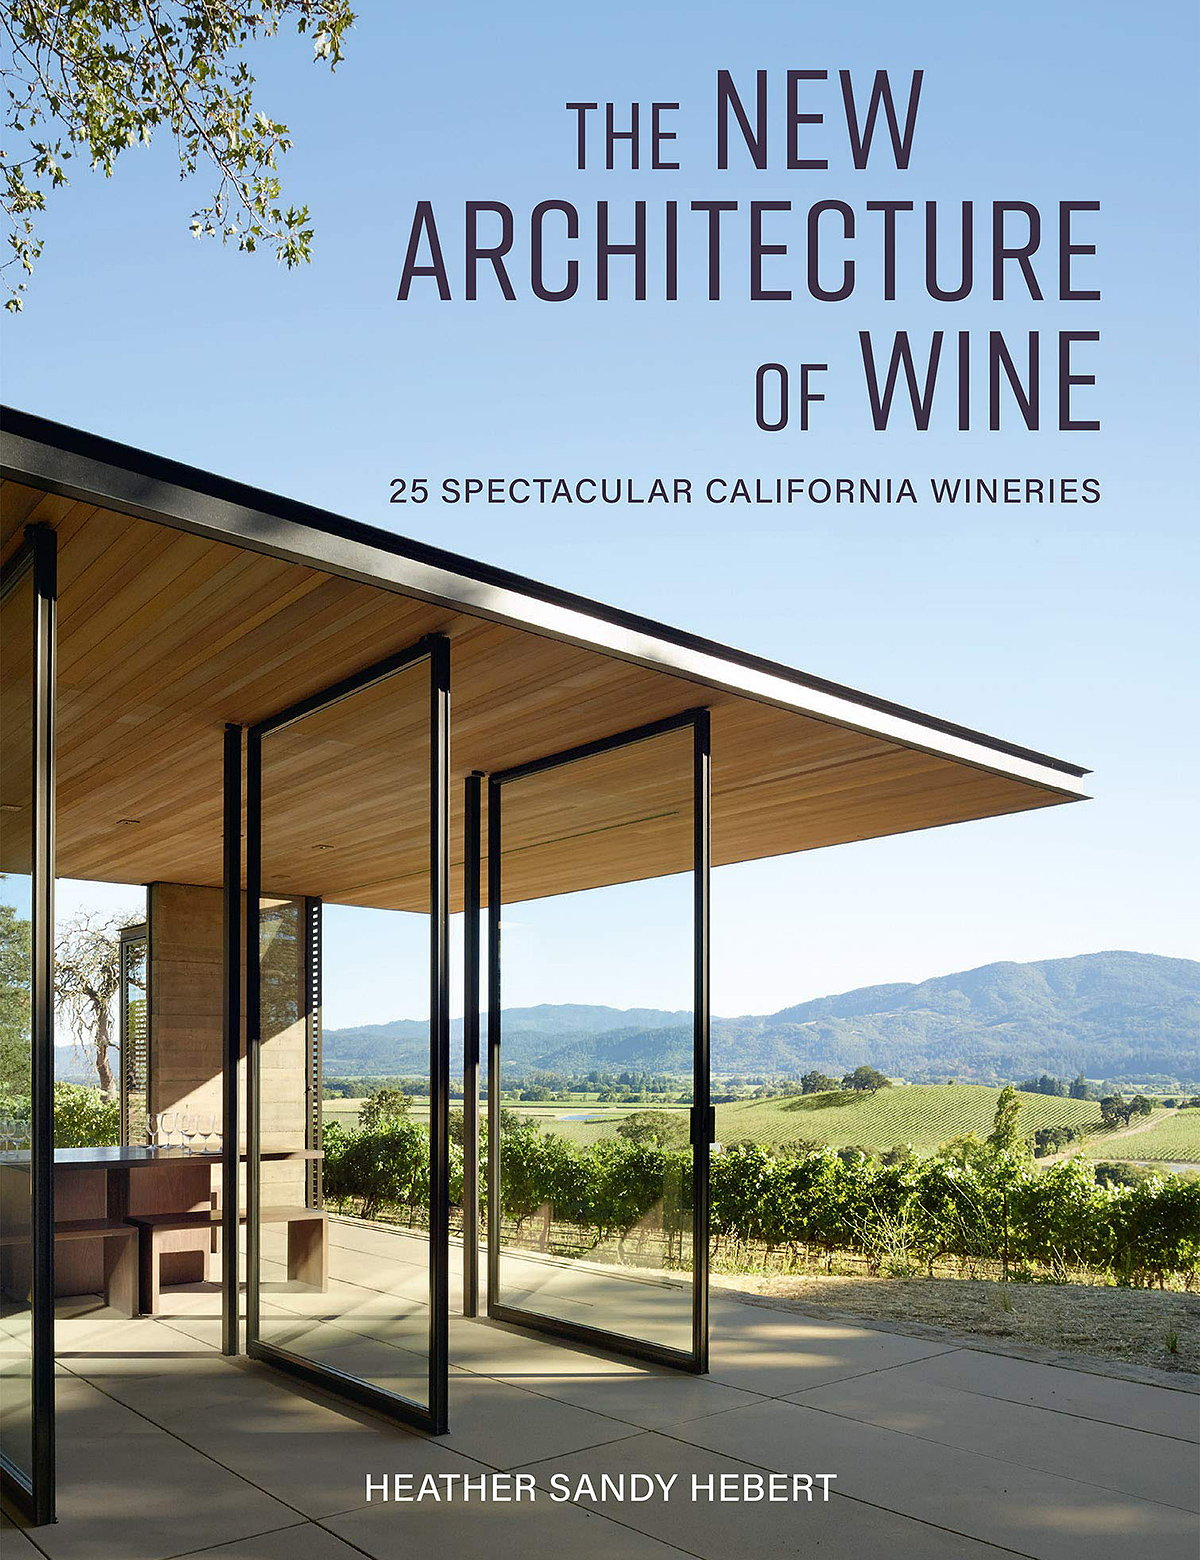 The New Architecture of Wine - 25 Spectacular California Wineries